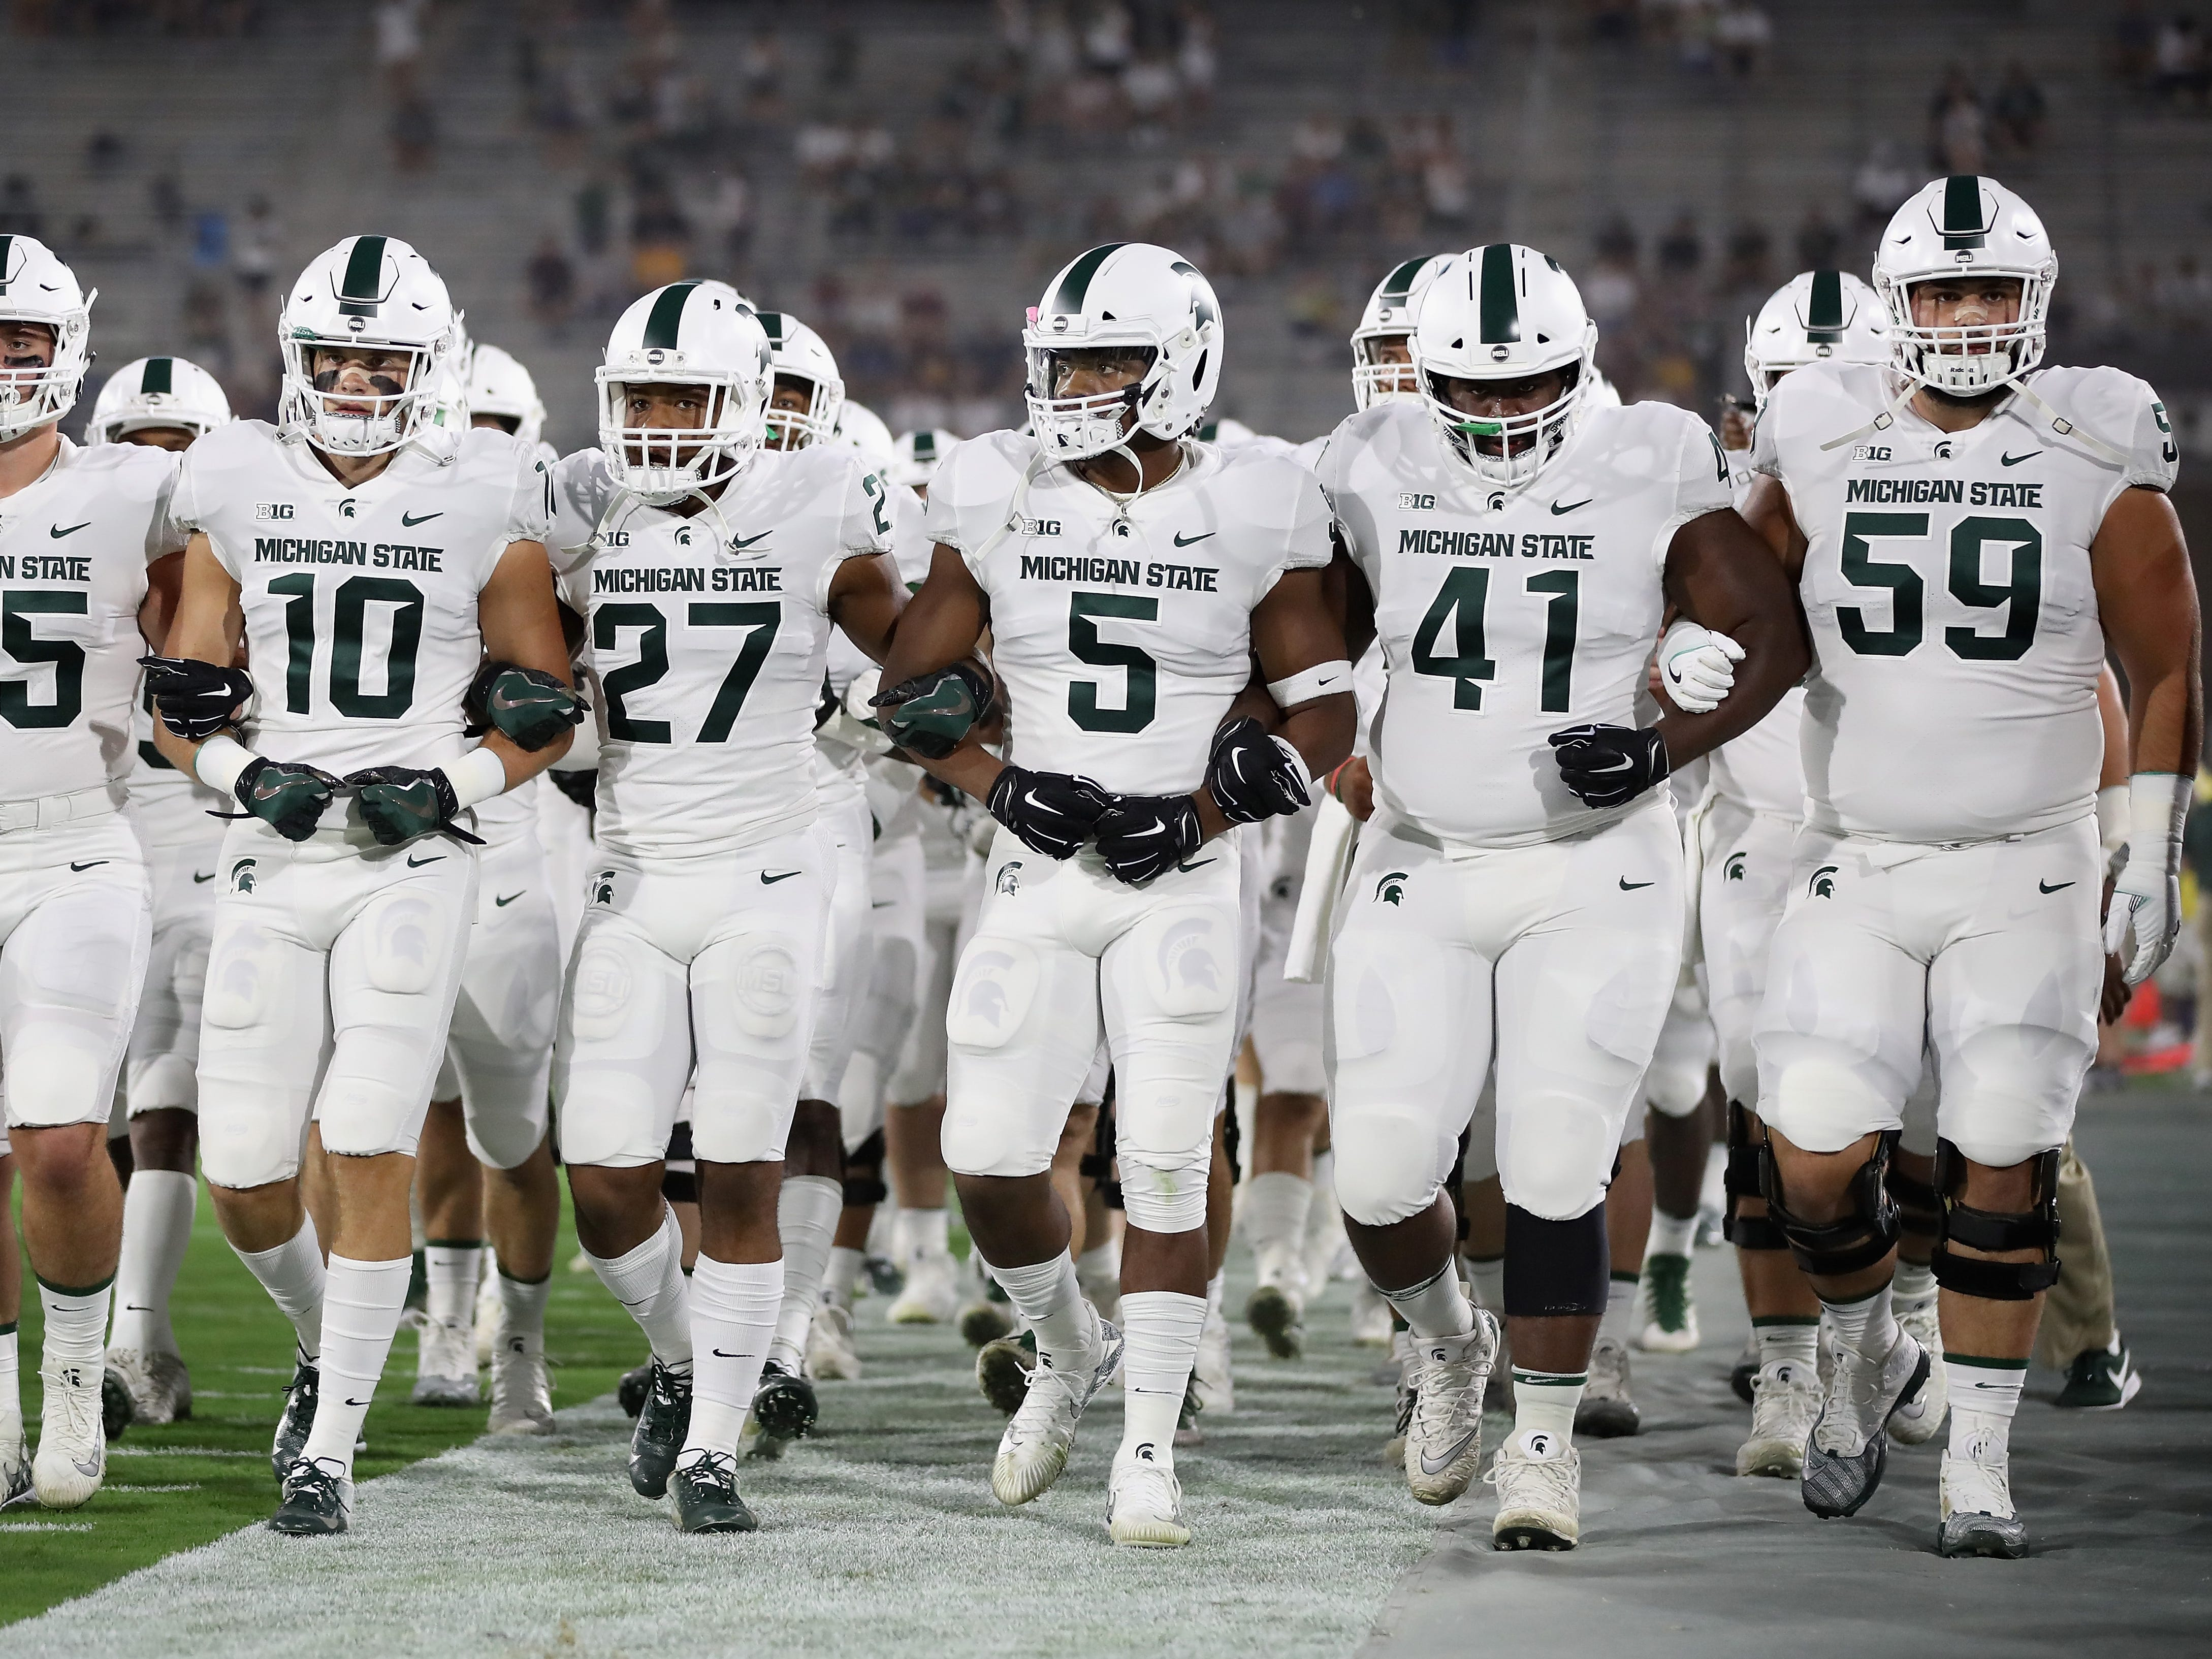 TEMPE, AZ - SEPTEMBER 08:  The Michigan State Spartans walk arm in arm onto the field before the college football game against the Arizona State Sun Devils at Sun Devil Stadium on September 8, 2018 in Tempe, Arizona.  (Photo by Christian Petersen/Getty Images)